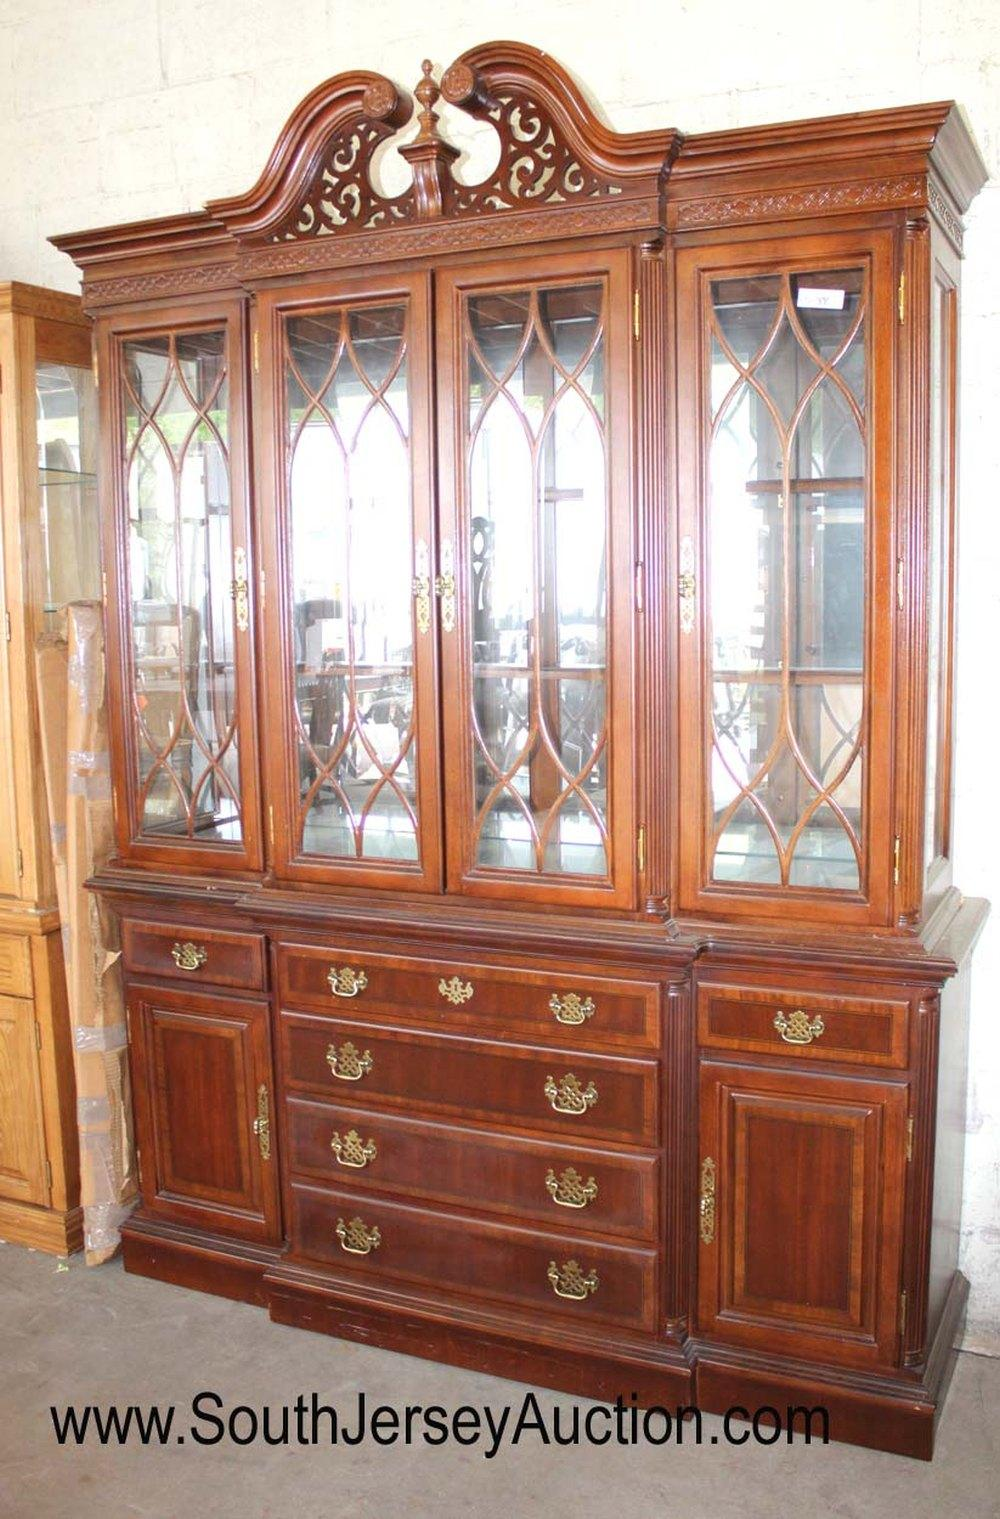 Contemporary 2 Piece Mahogany Chippendale Style China Cabinet